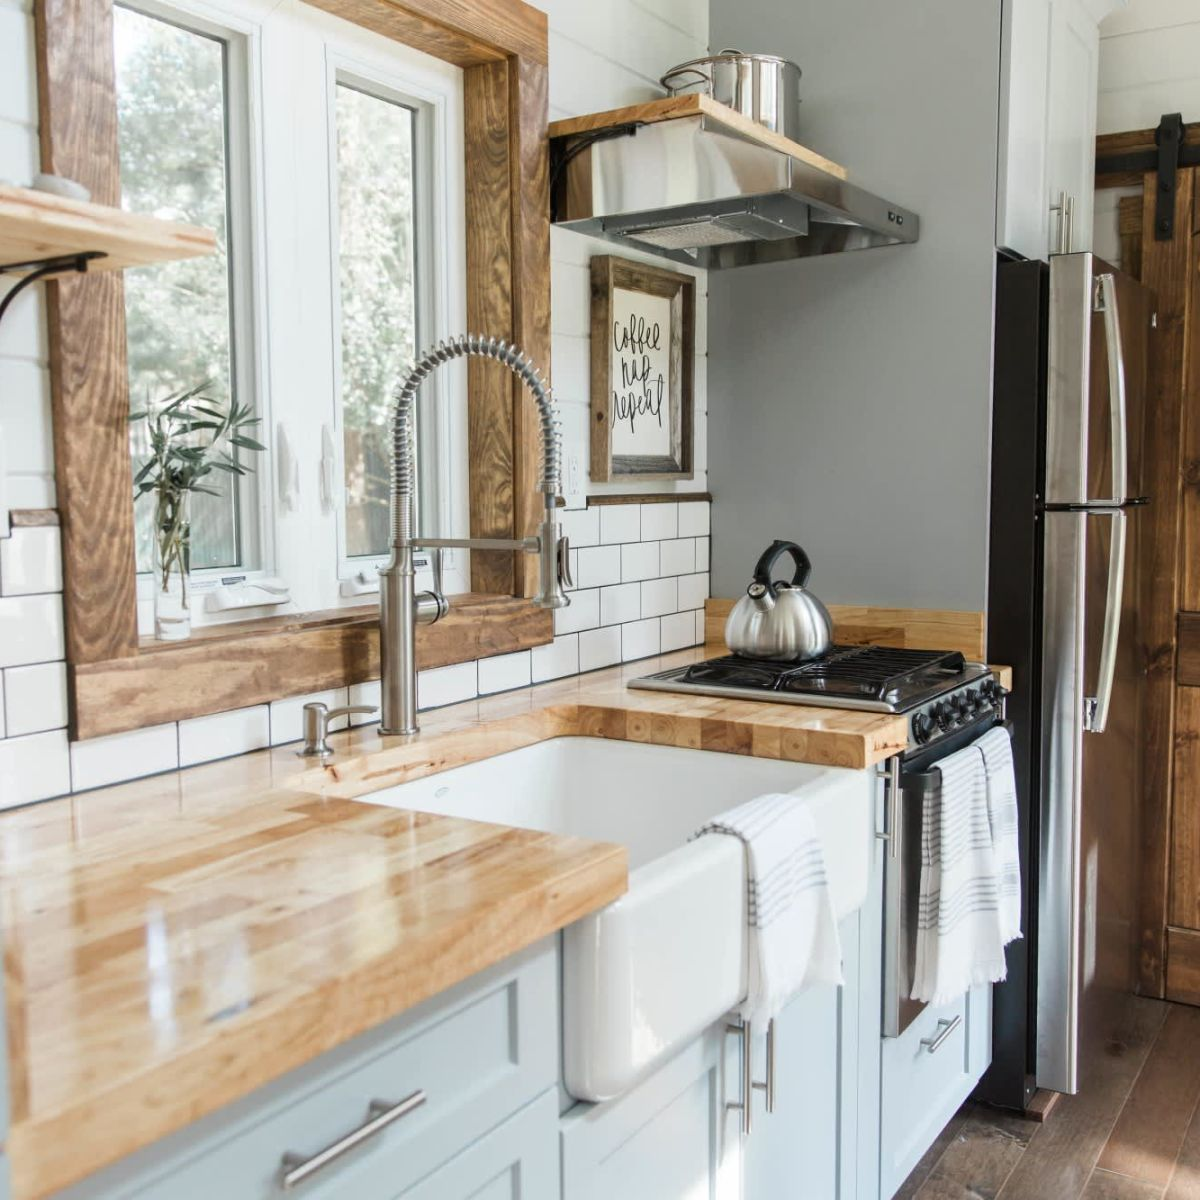 Luxurious 35 Goosenecktiny House For Sale With A Kegerator Tiny House For Rent In Chattanooga Tennessee Tiny House Listings In 2020 Tiny Houses For Rent Tiny House Listings Tiny Luxury